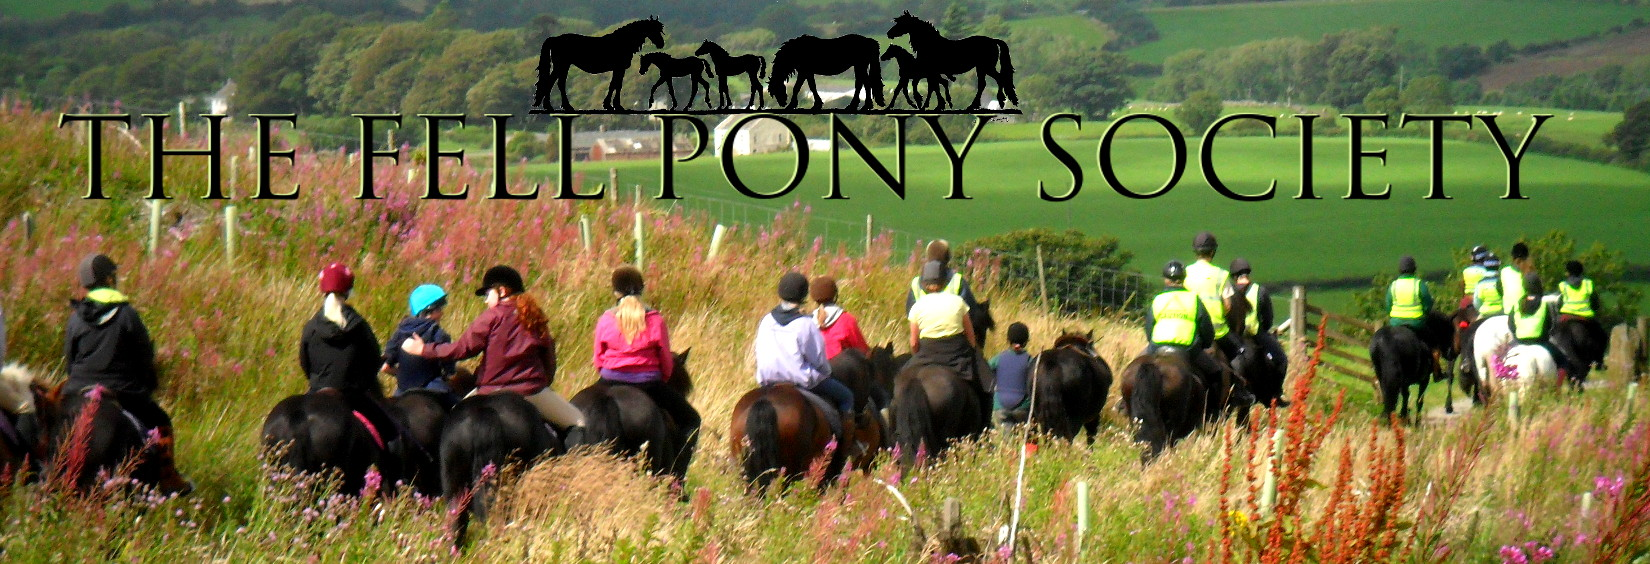 Fell Pony Society logo and images of ponies